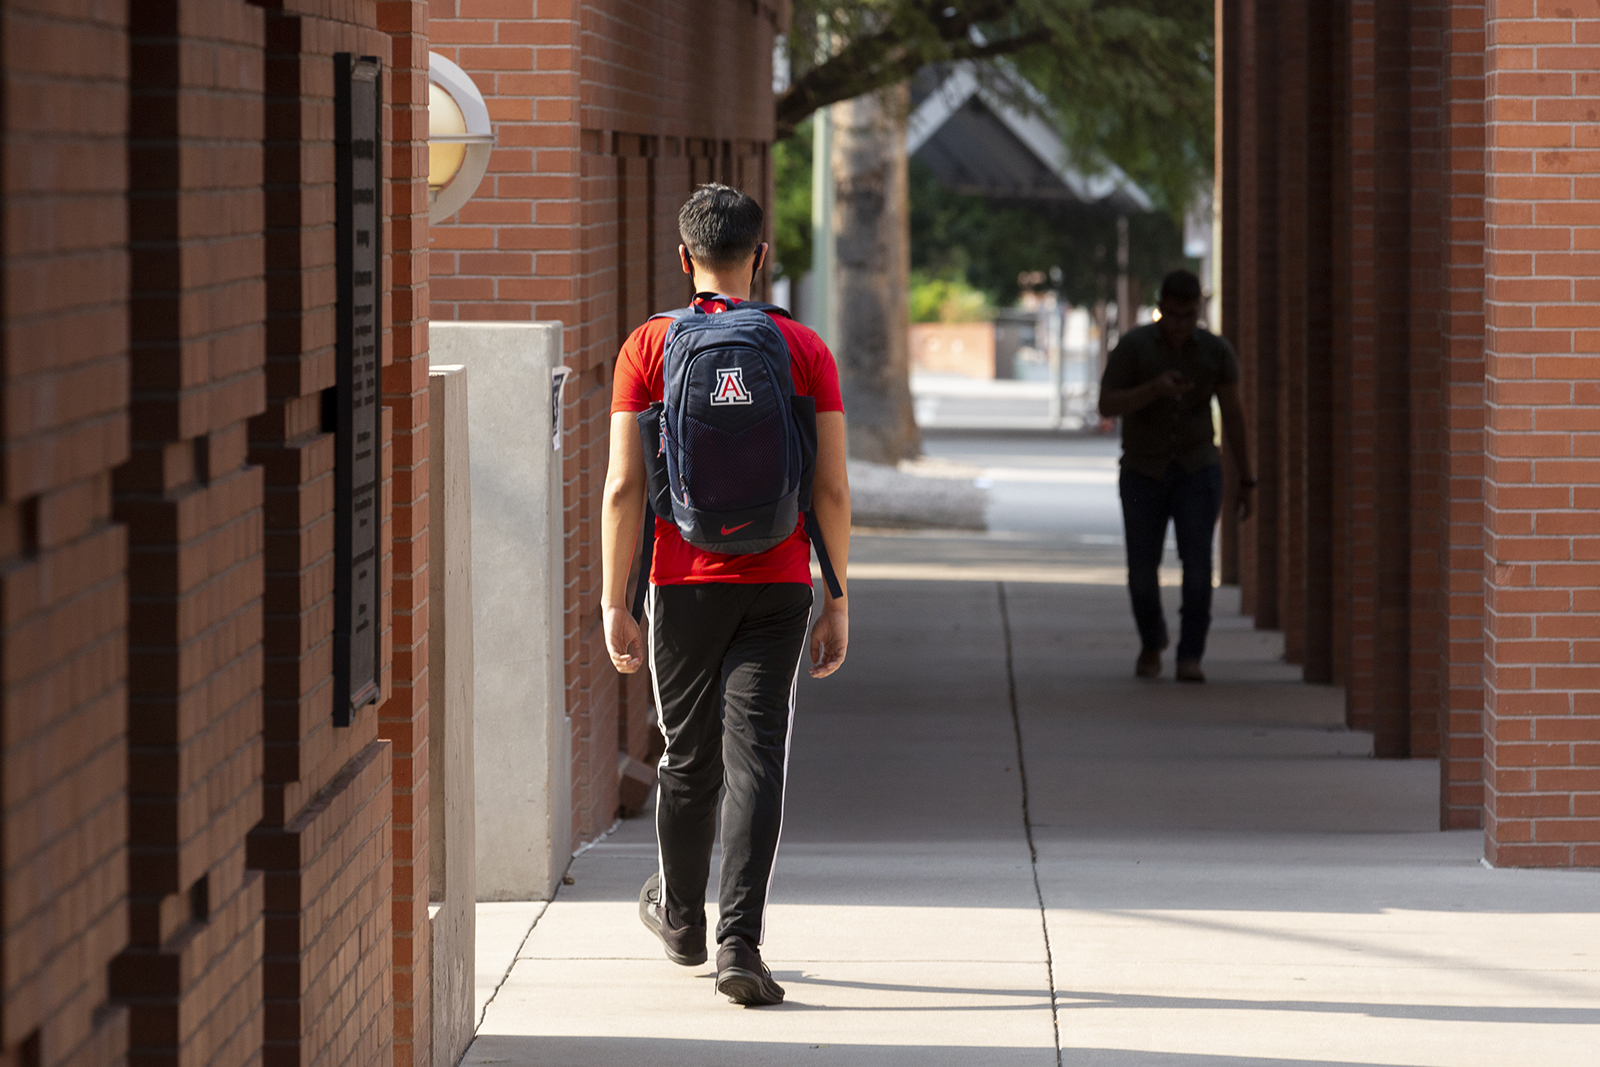 Students walk through the campus at the University of Arizona in Tucson, Arizona, on August 24.